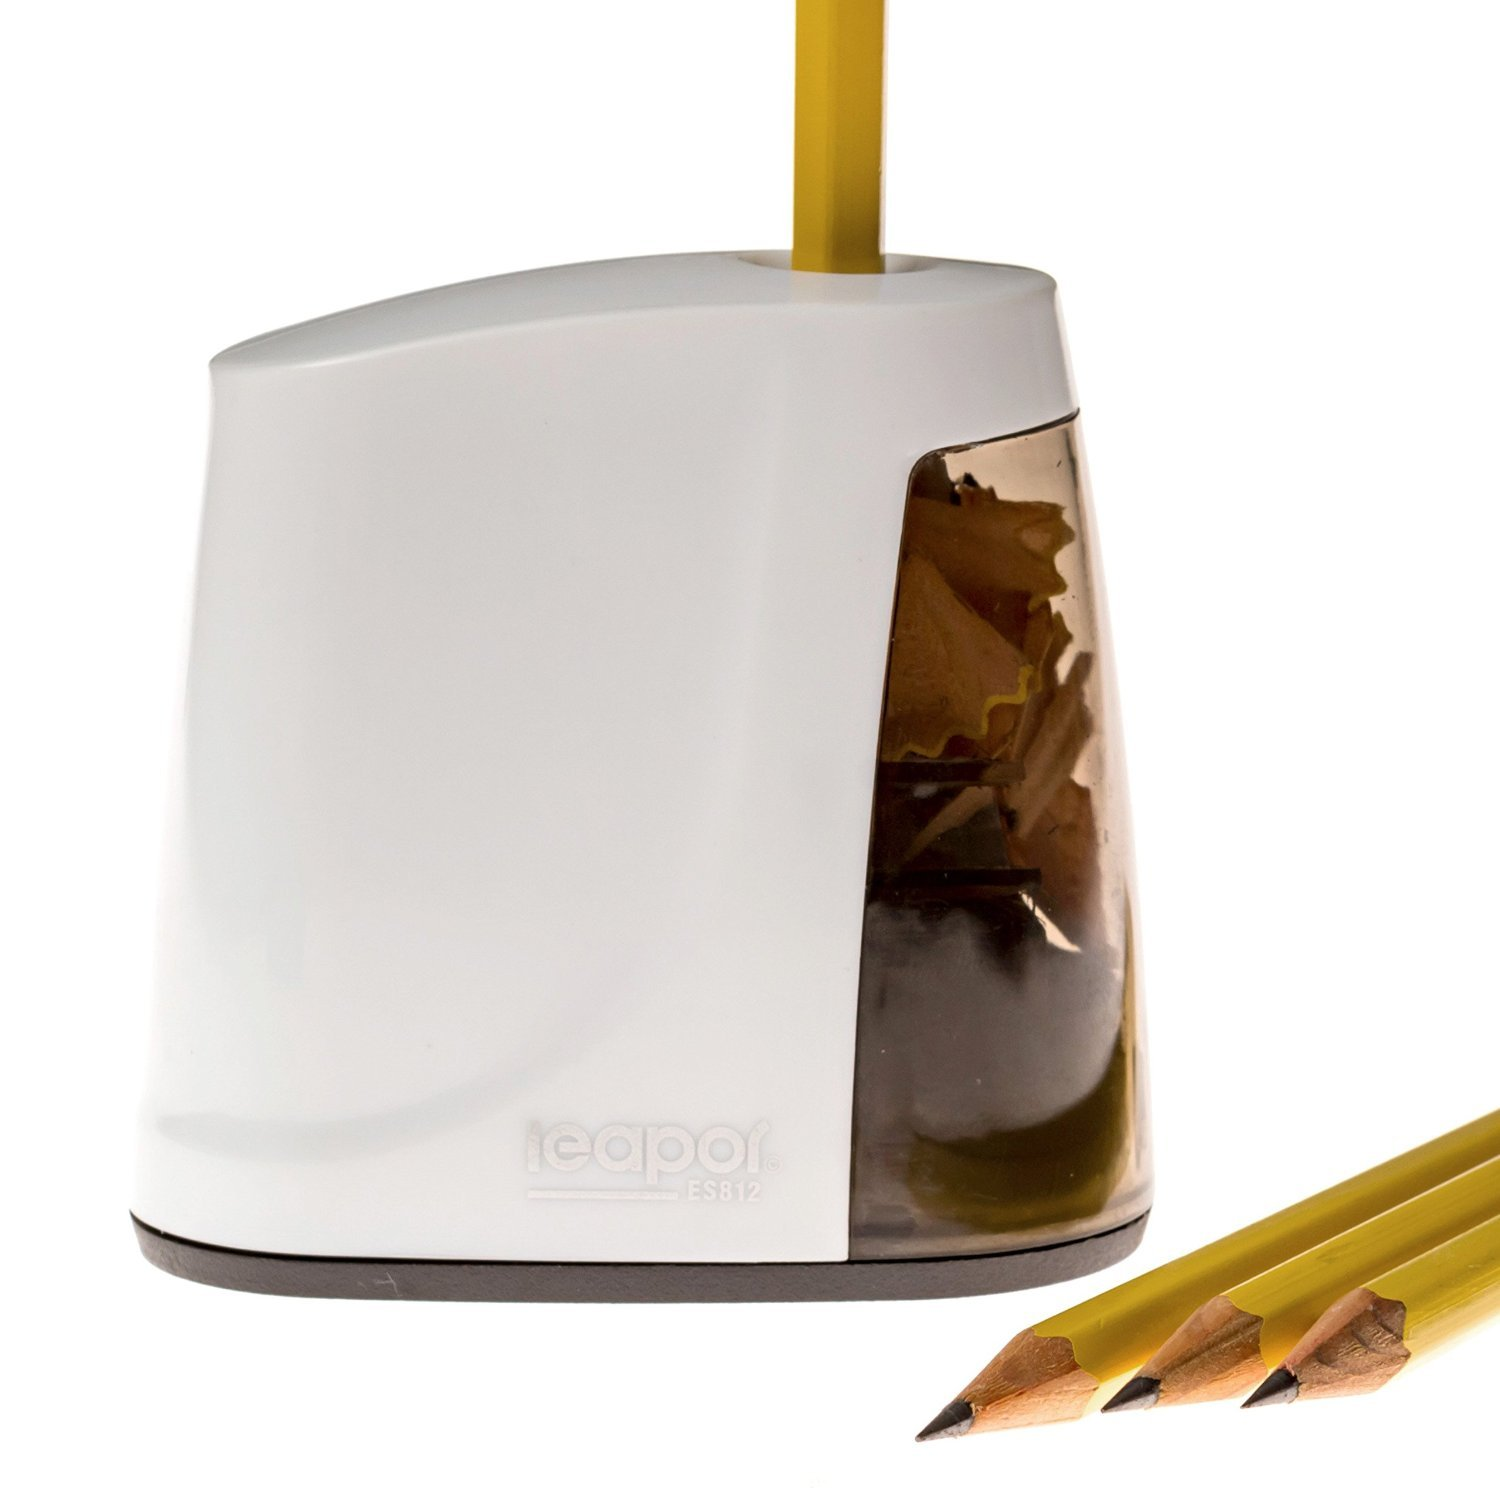 Generic Electric Pencil Sharpener - Battery Operated